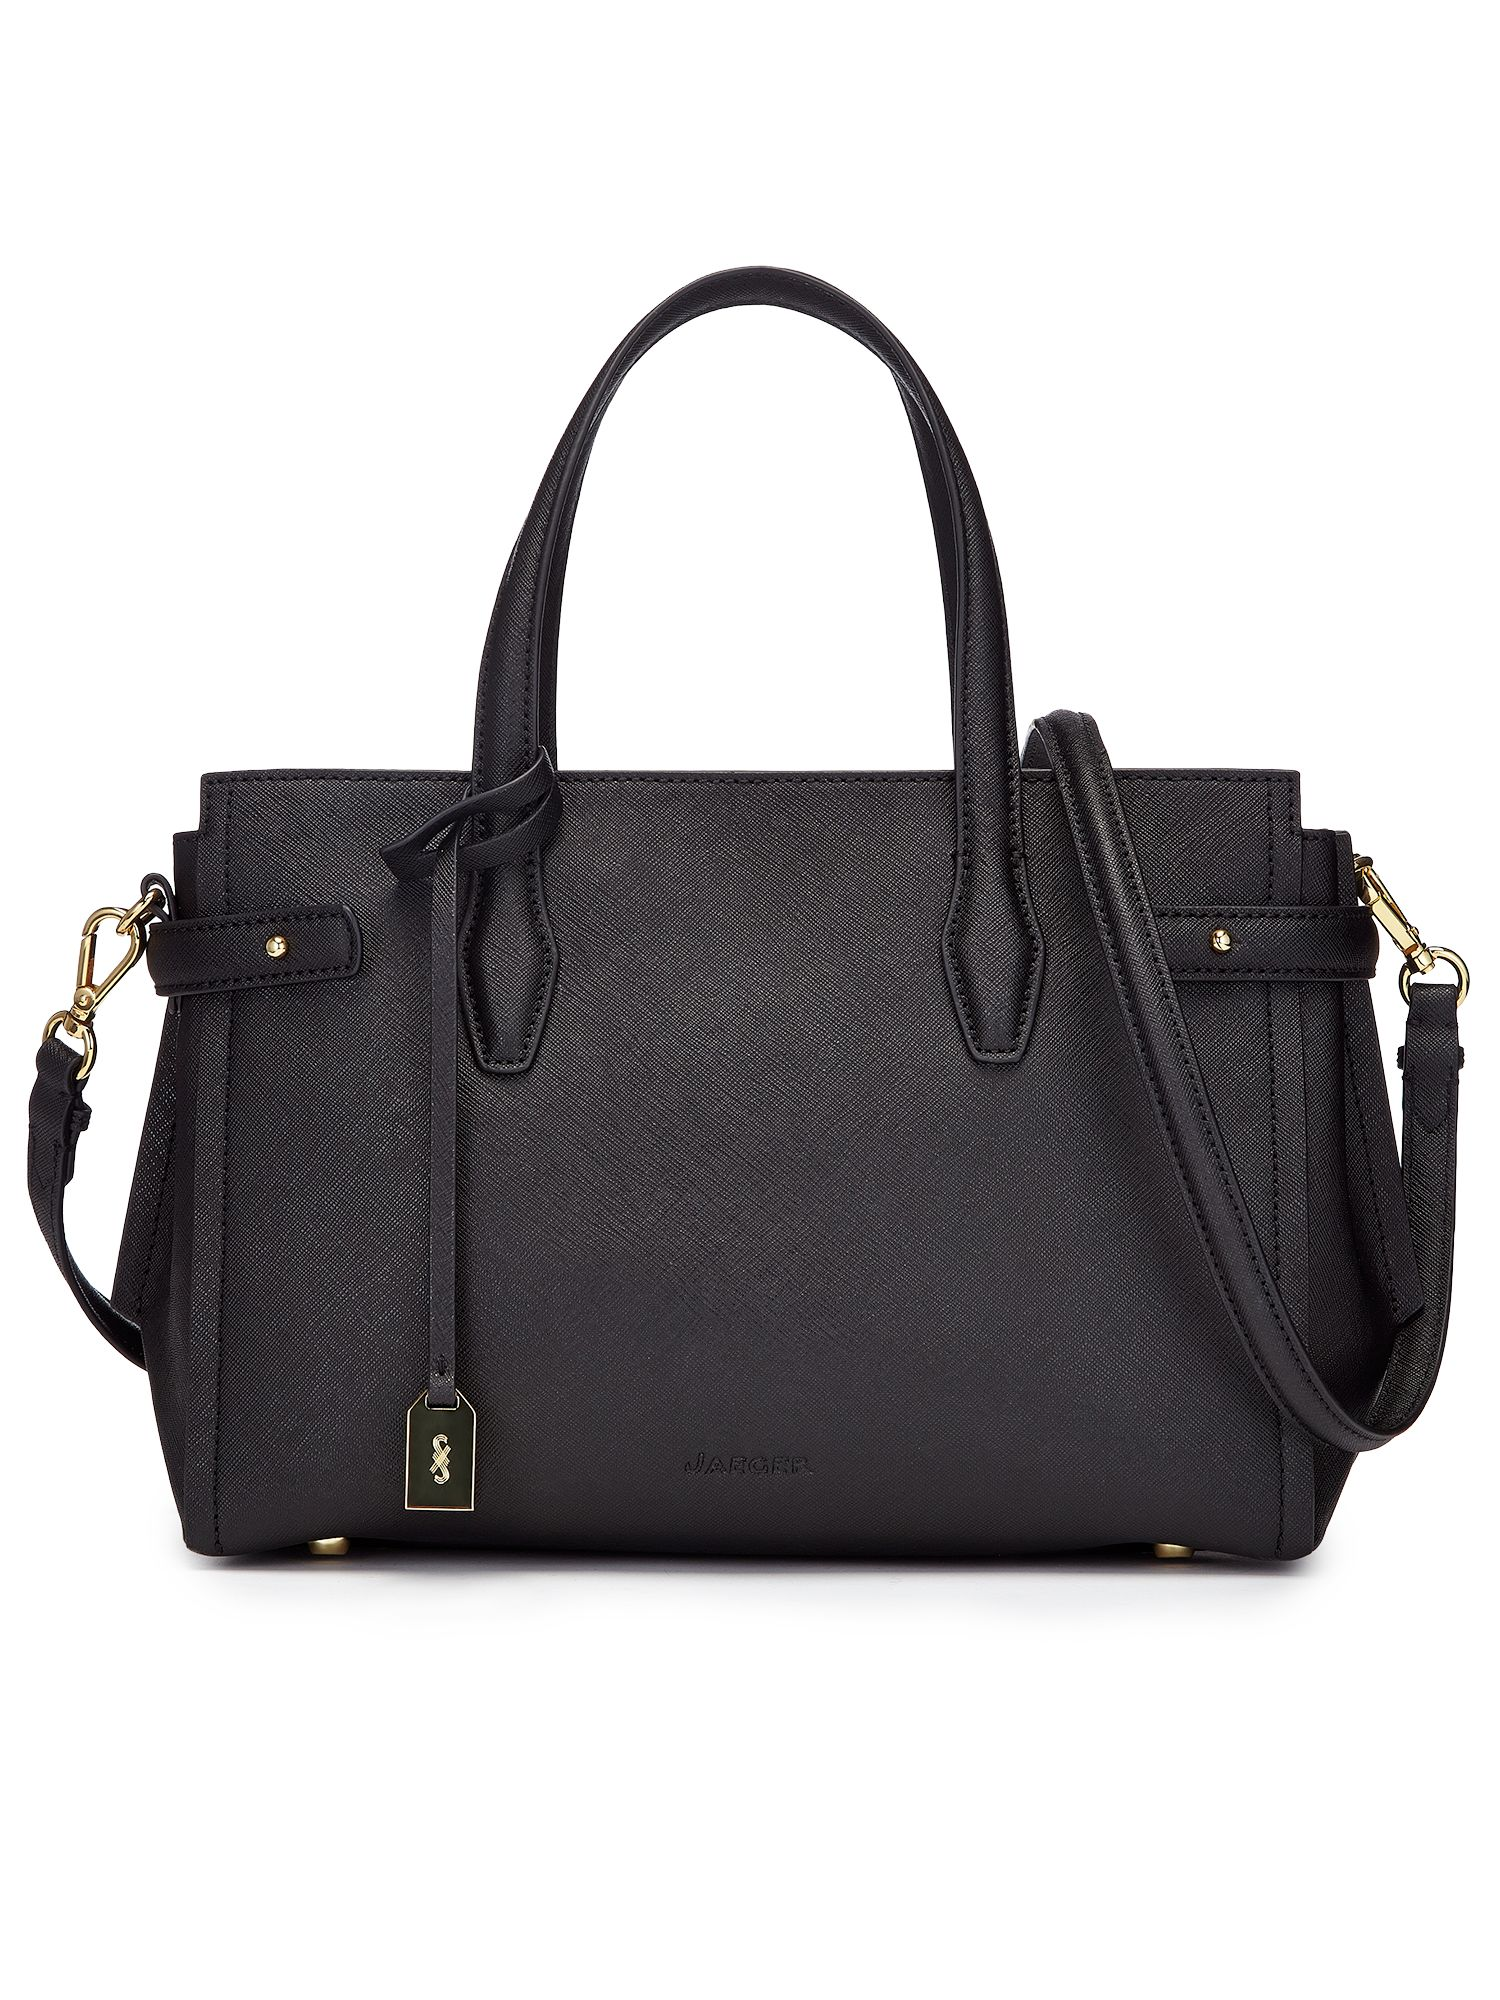 Jaeger: Maddison Top Handle Bag